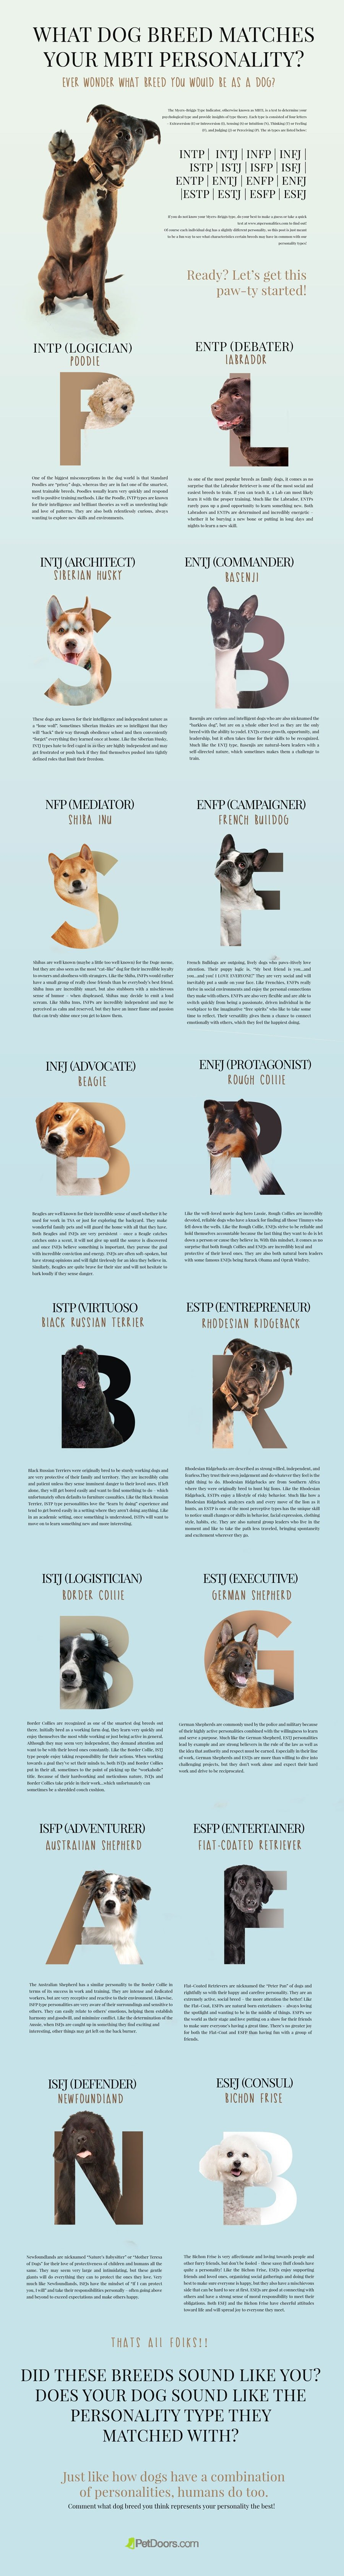 What Dog Breed Matches Your MBTI Personality?